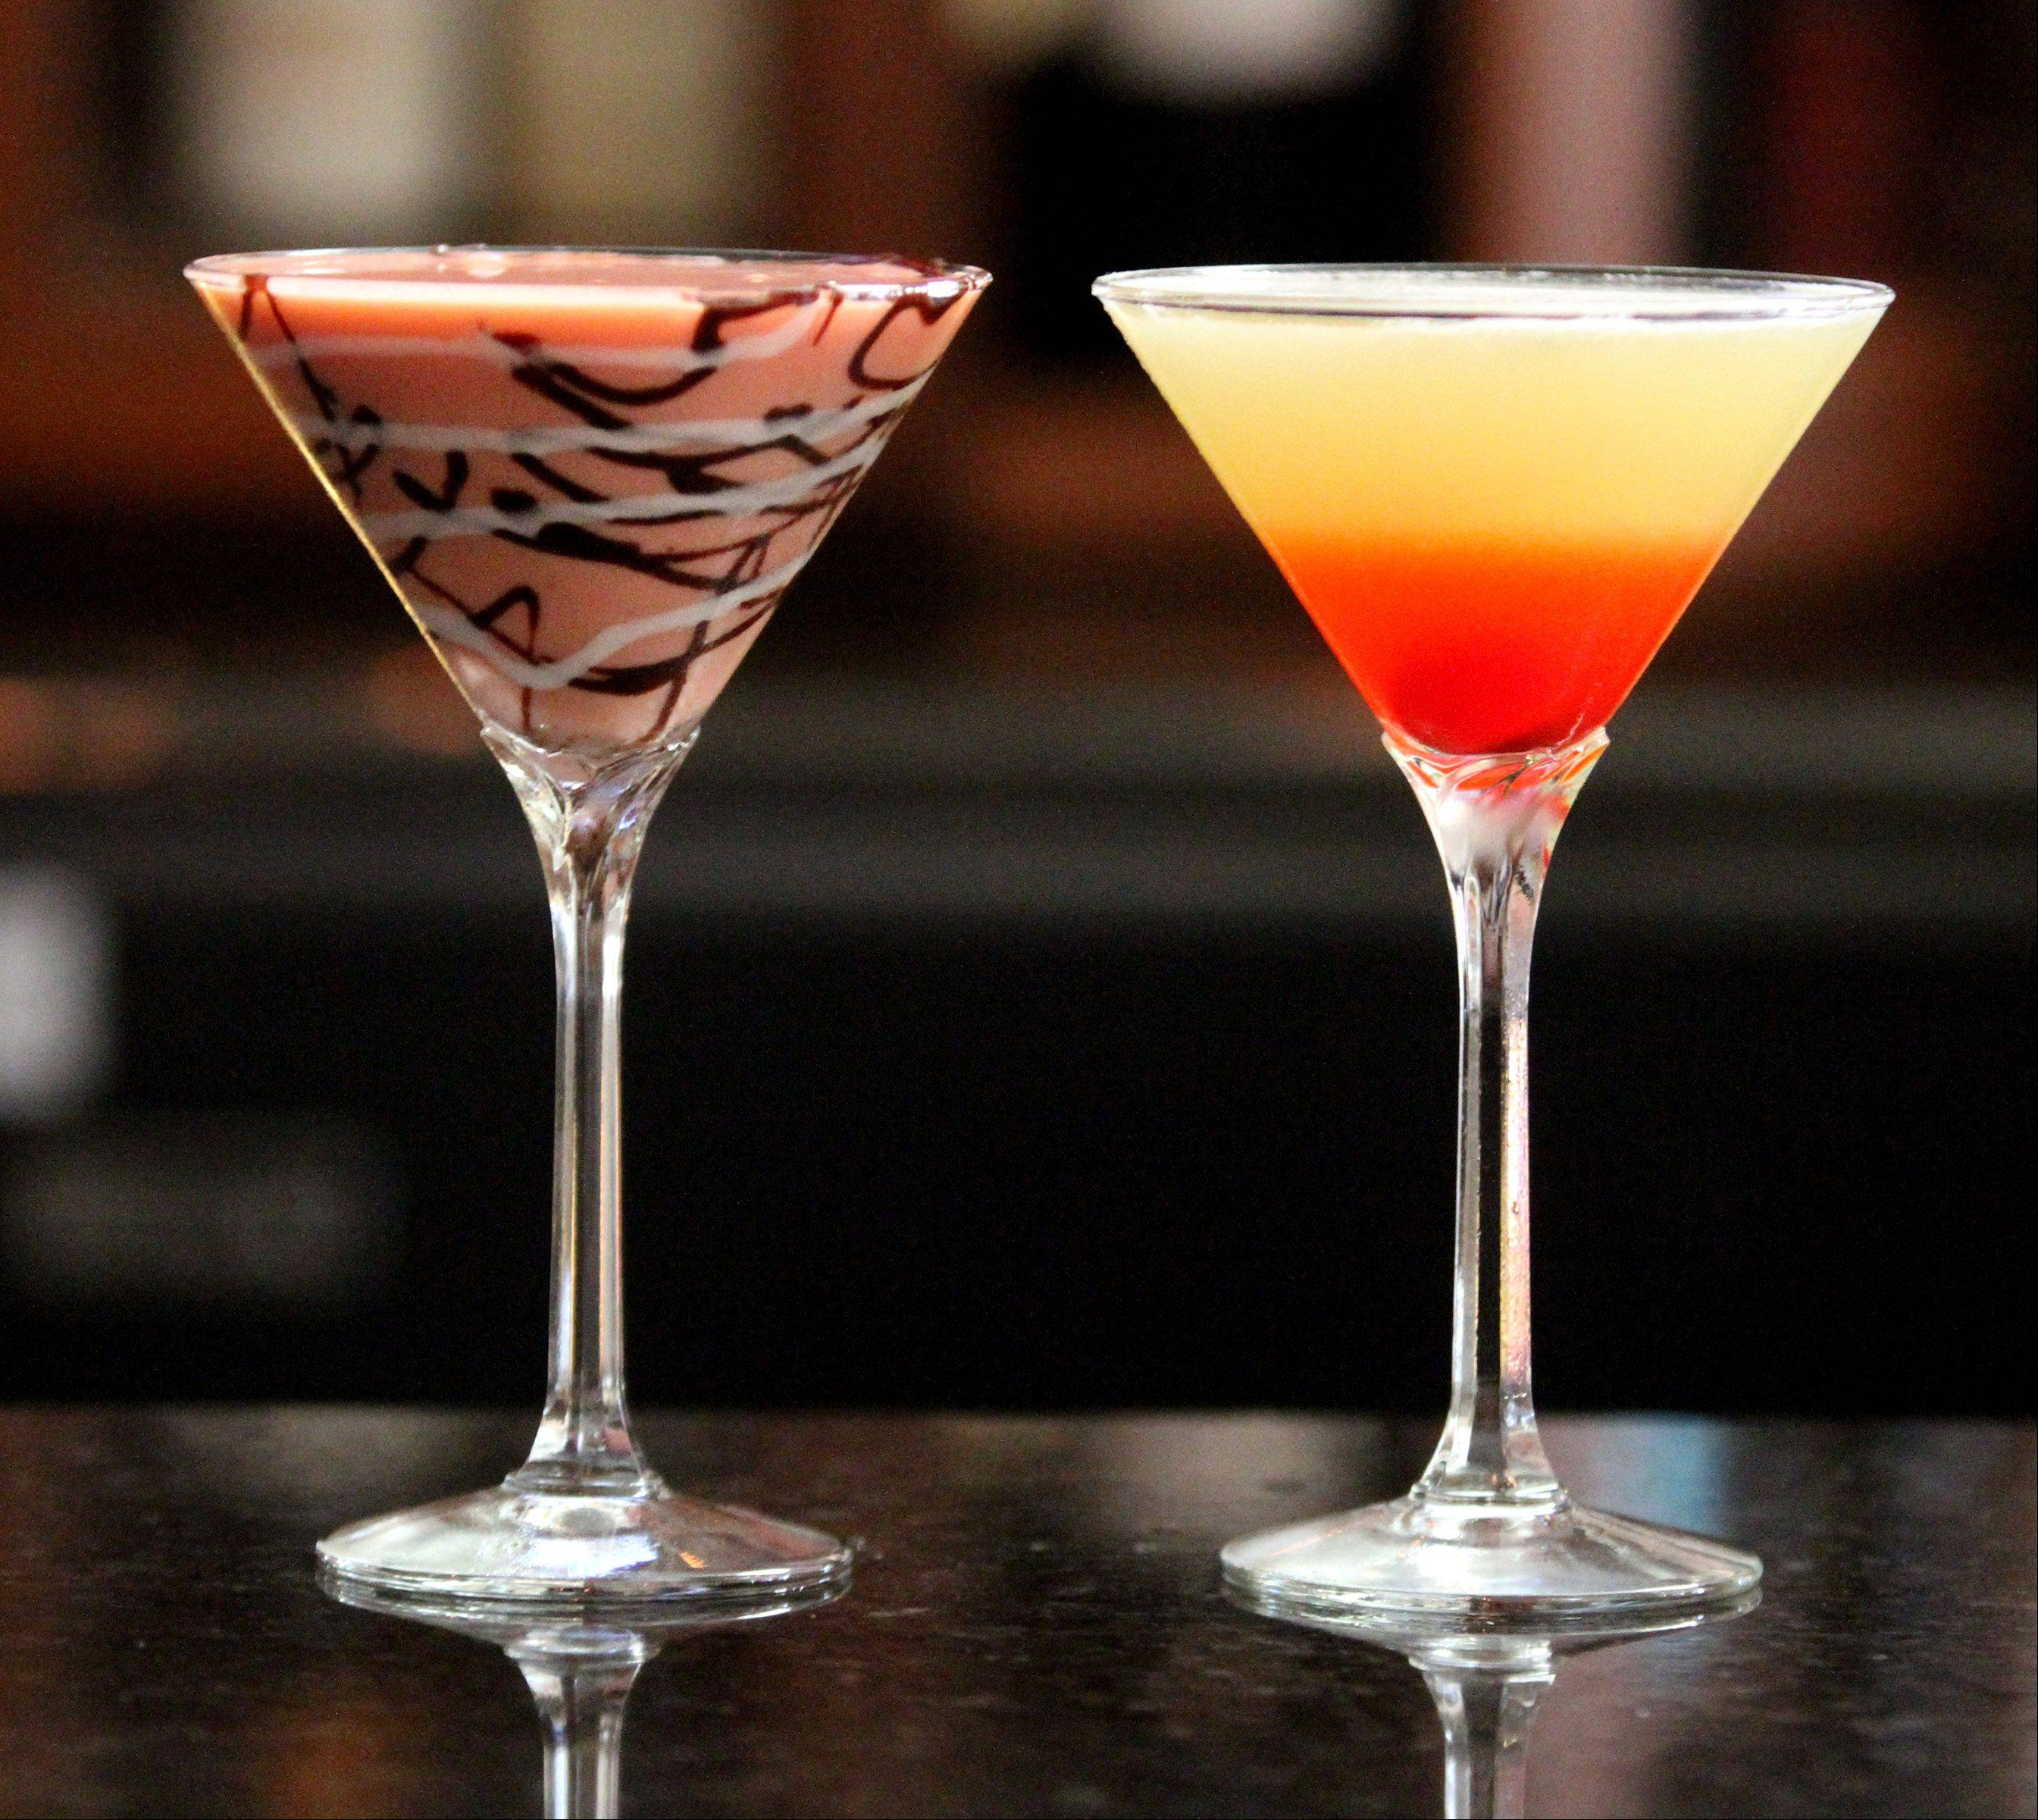 The colorful Pink Moon and Bikini martinis are just two of the cocktail offerings at Strawberry Moon.